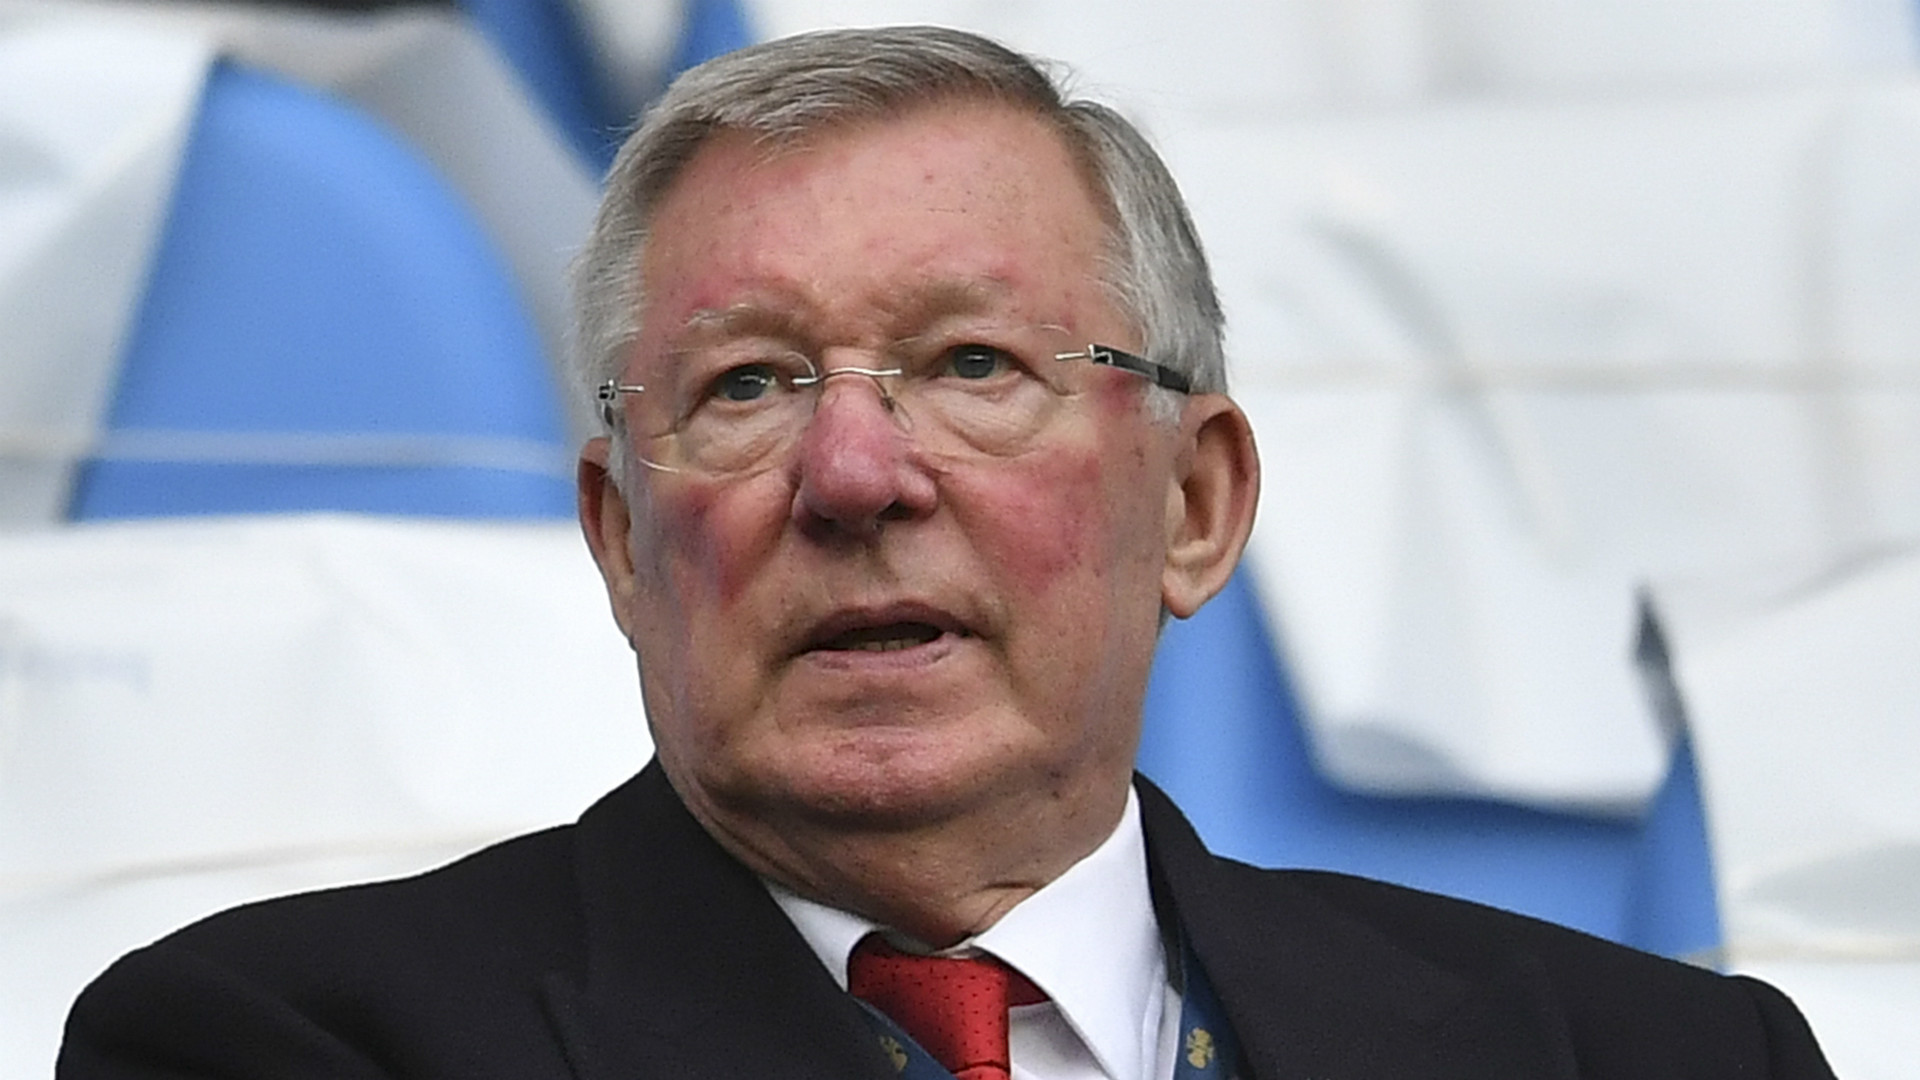 Liverpool send support to 'great friend' Sir Alex Ferguson